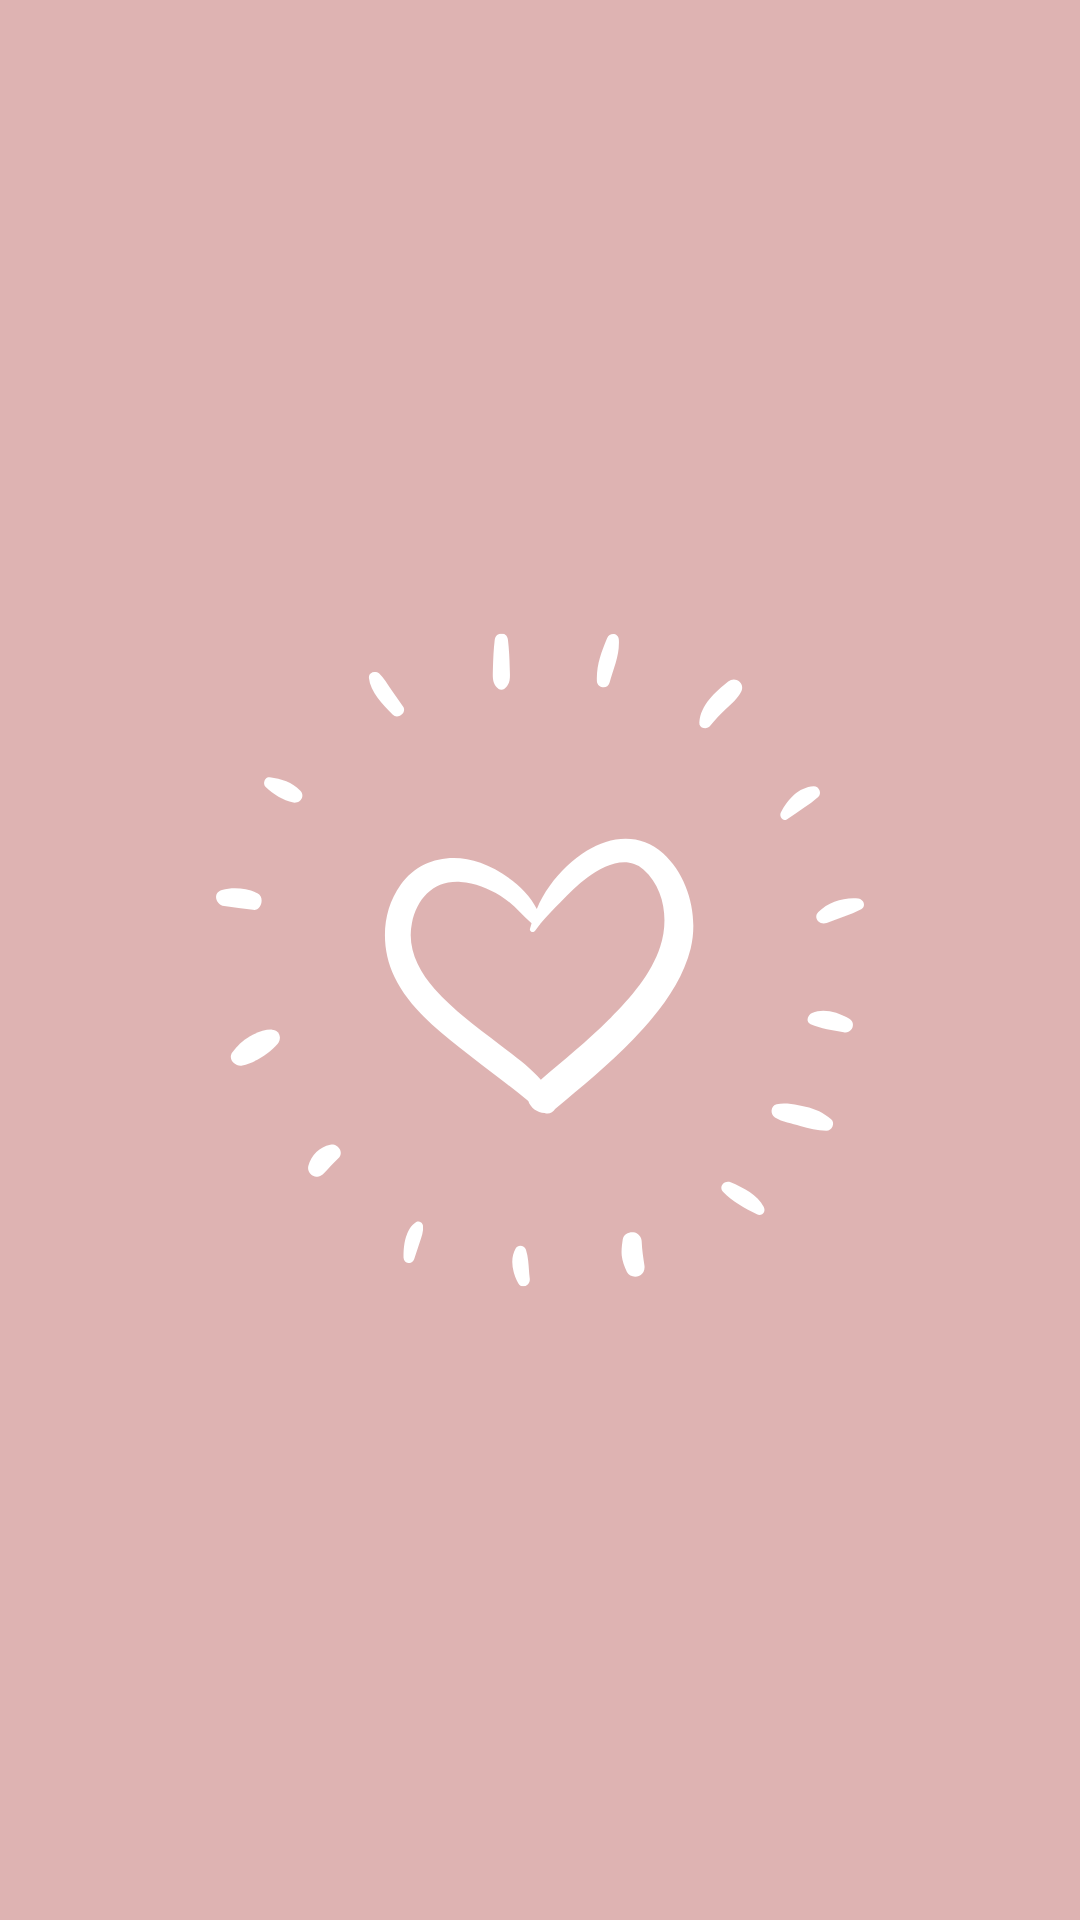 Use This Chic Minimalist Instagram Highlight Cover To Organize Your Instagram Page Cute Wallpapers Cute Wallpapers For Ipad Cute Girl Wallpaper